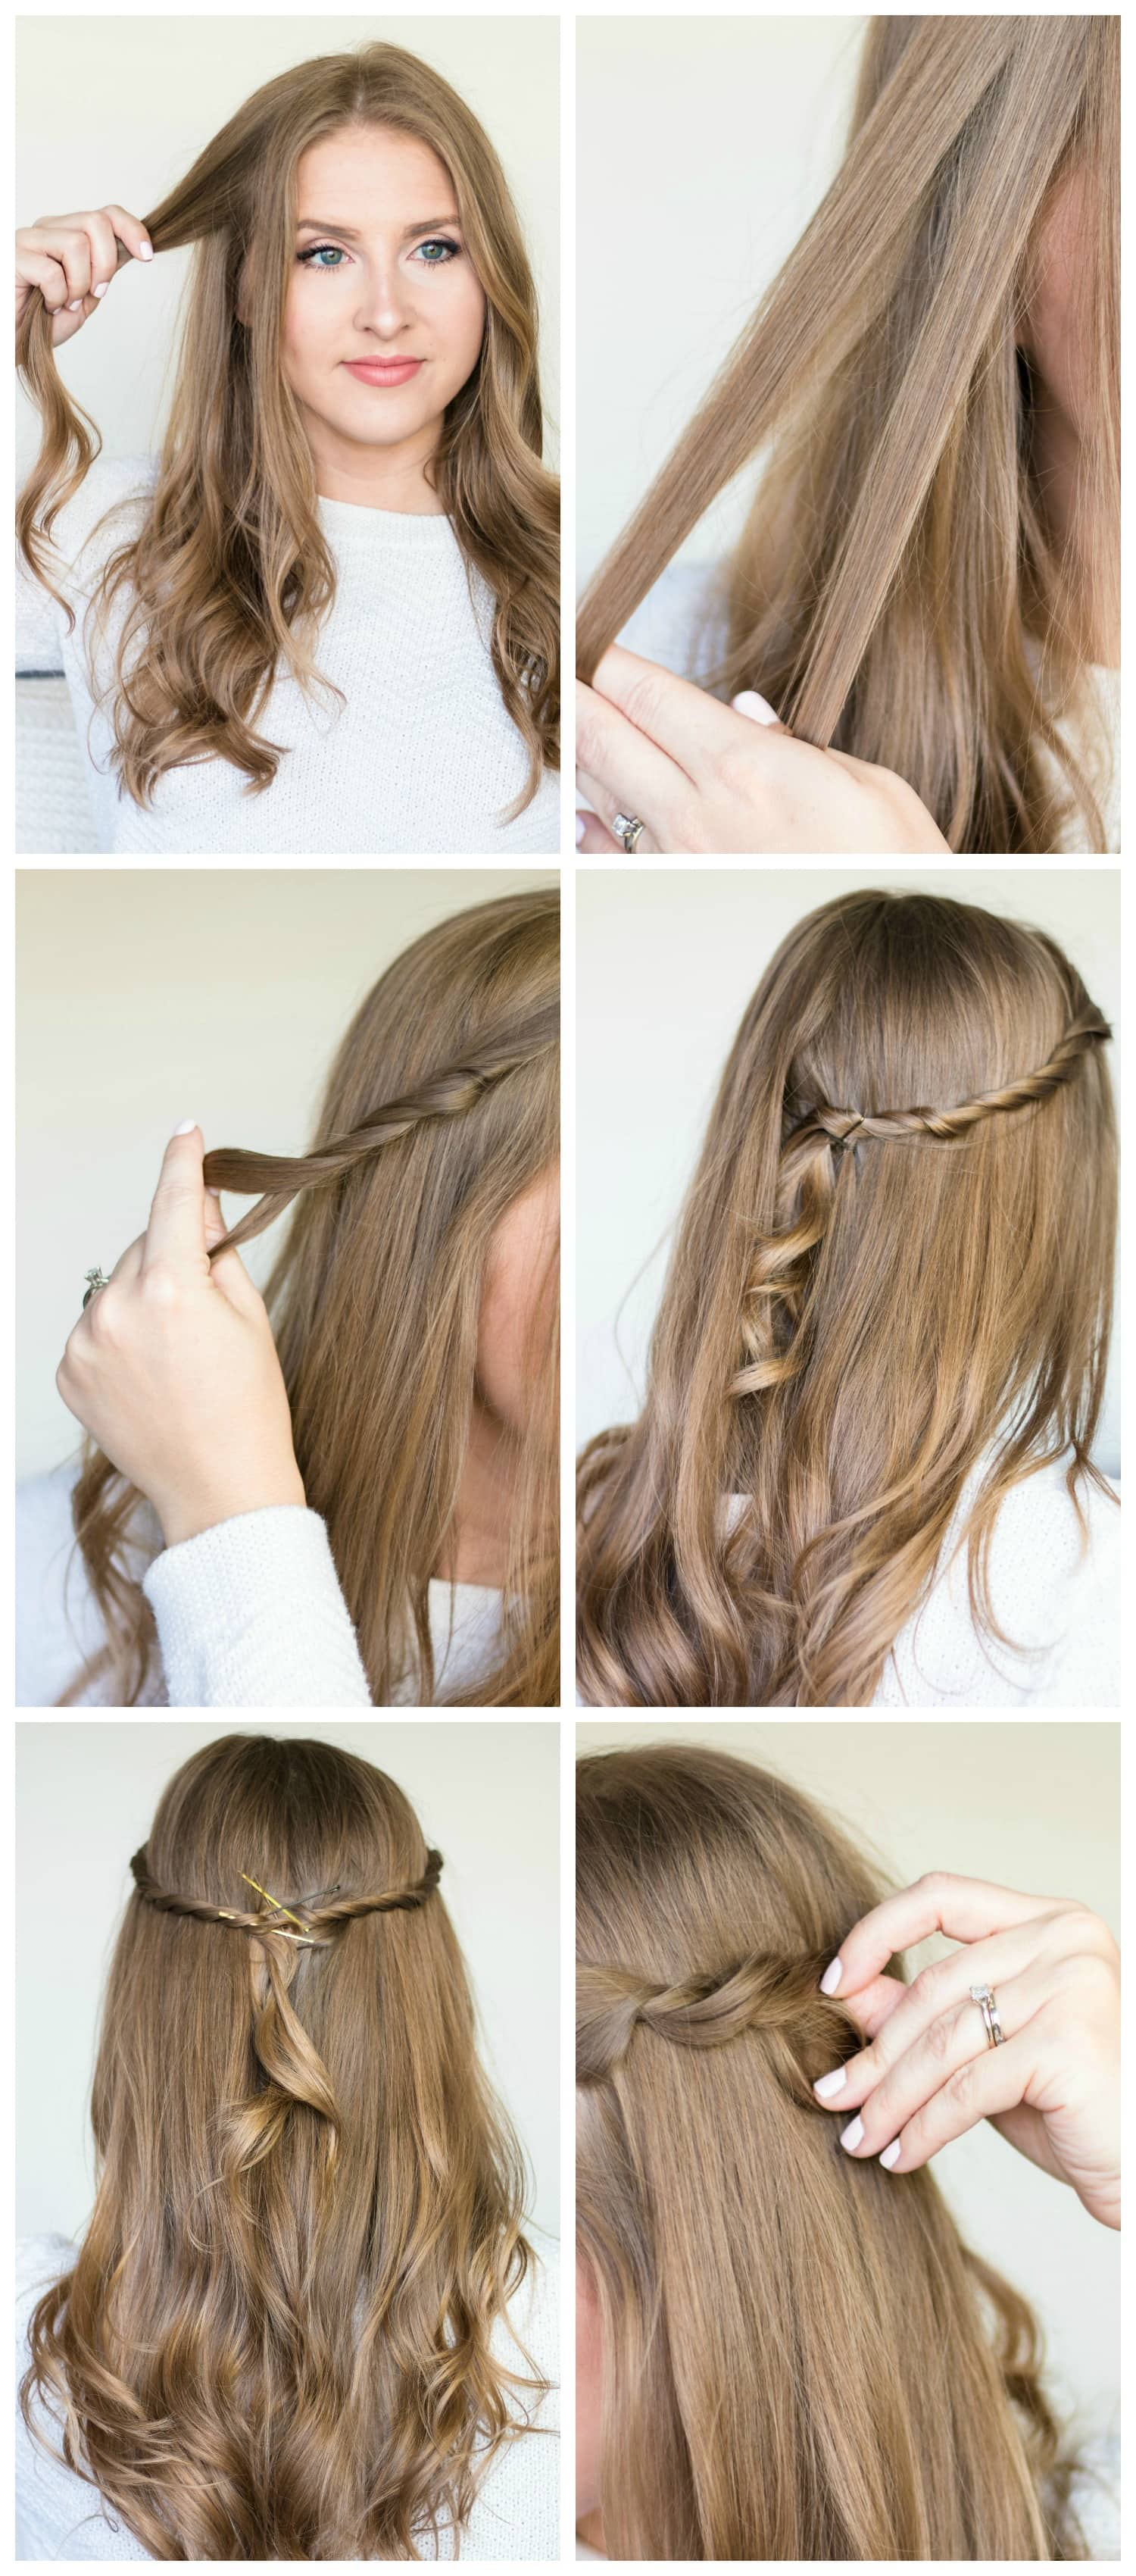 twisted-half-up-hair-style-tutorial-pantene